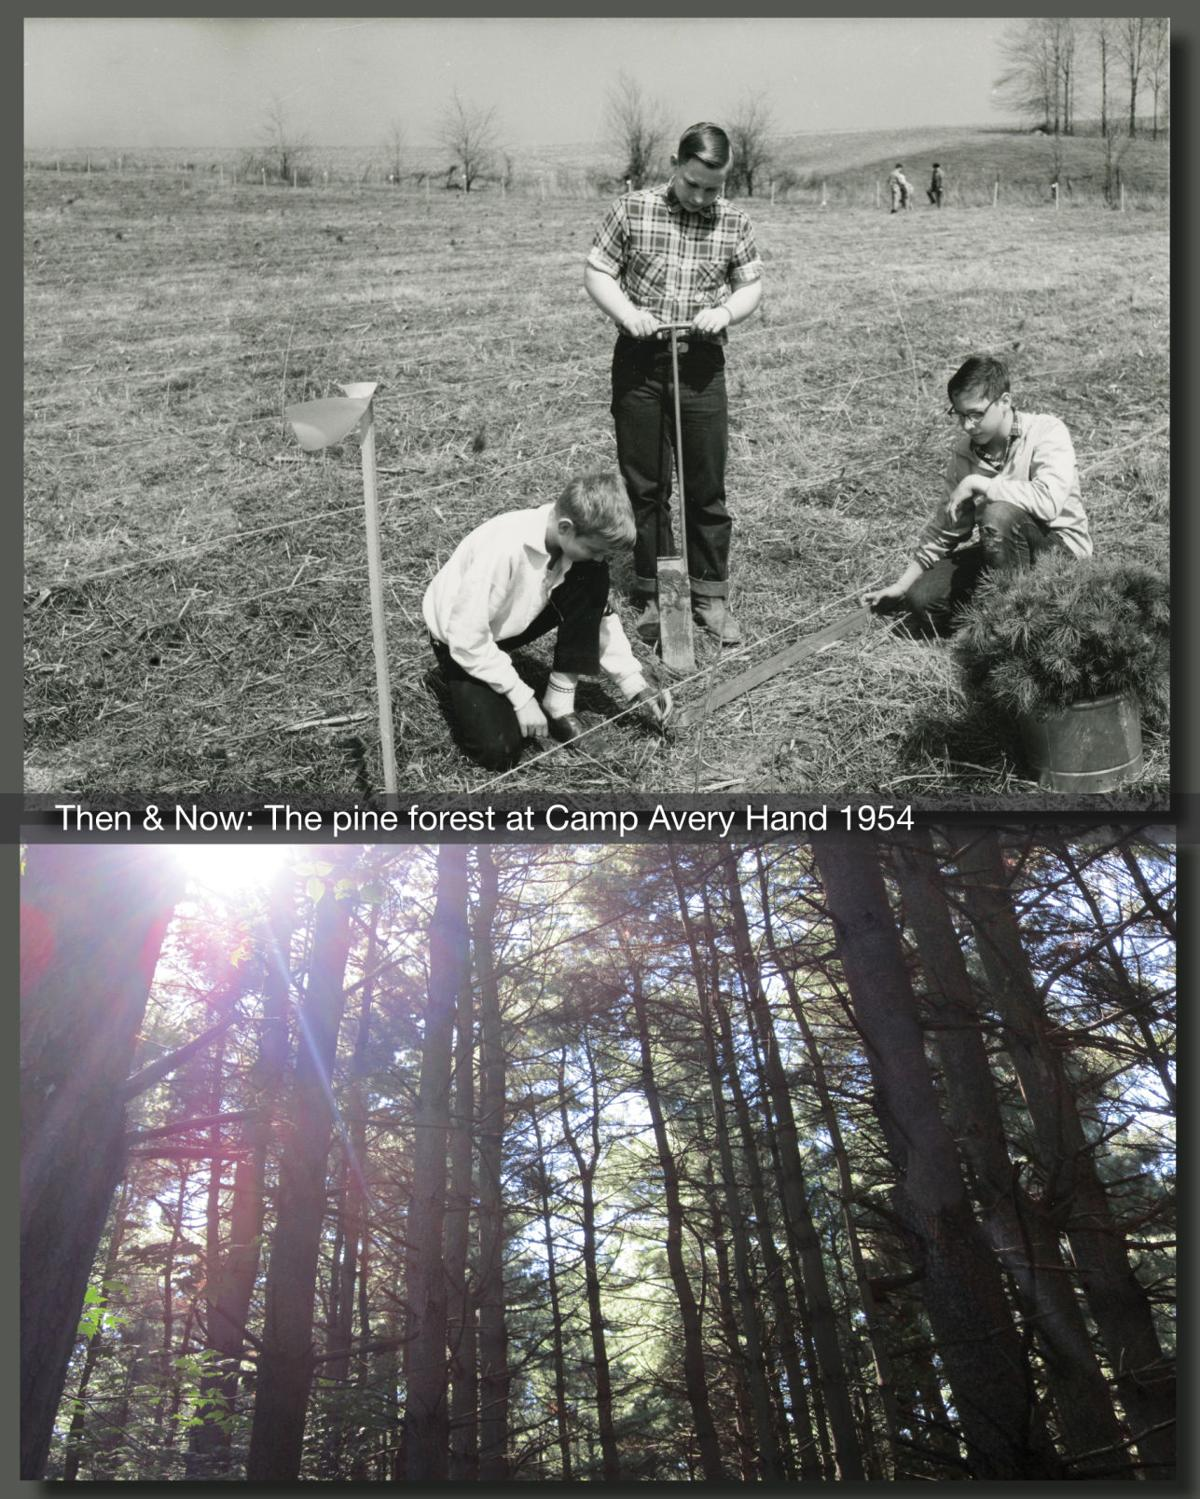 Then & Now: Boy Scouts planting pine seedlings 1954